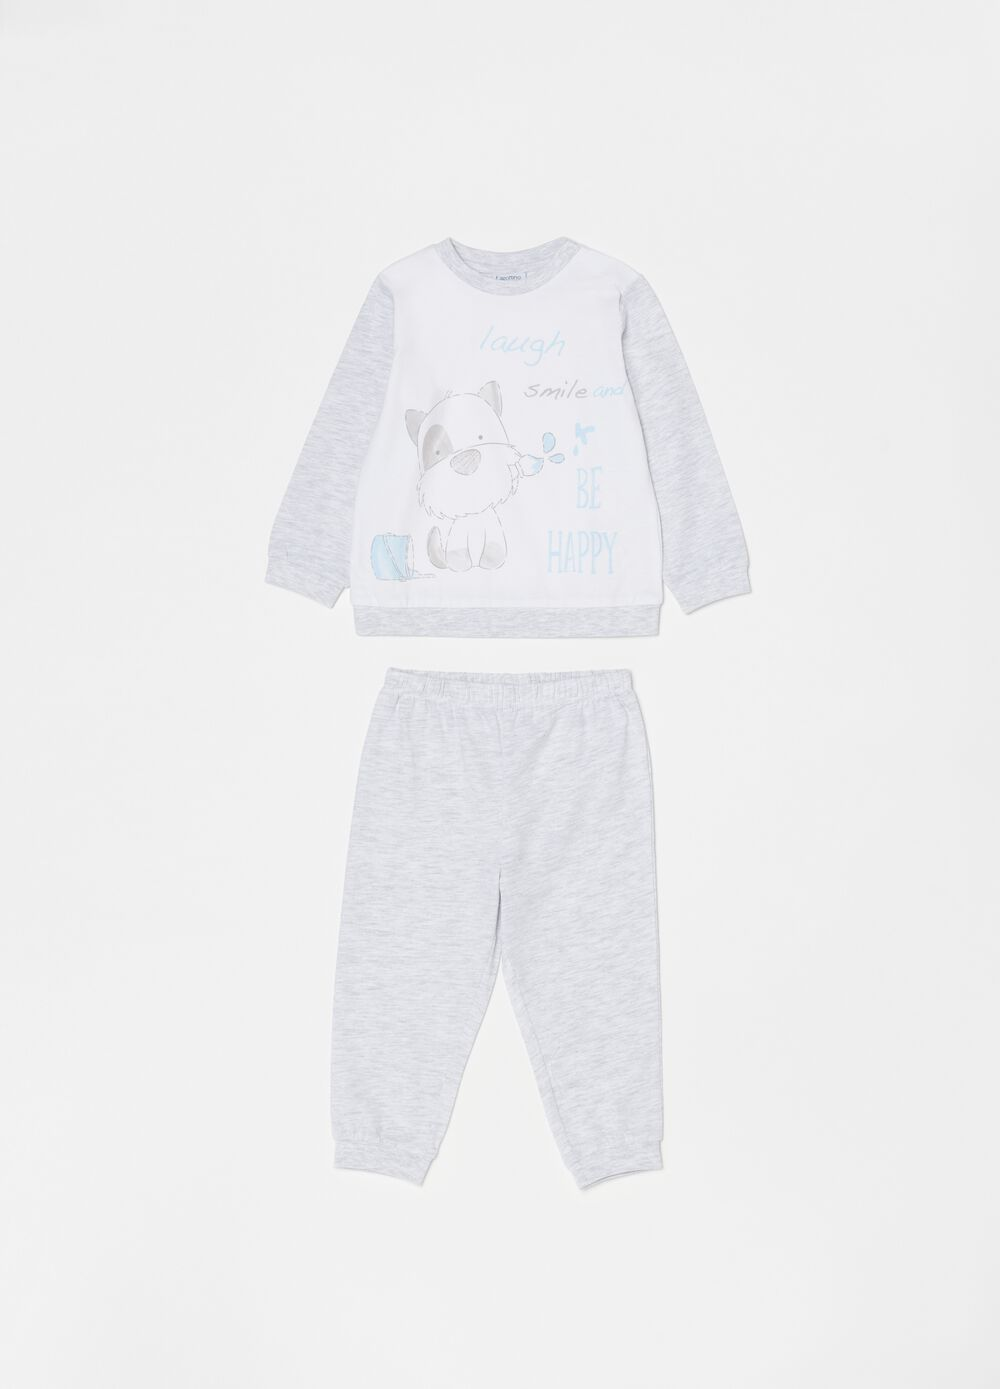 Long pyjamas in organic cotton with puppy